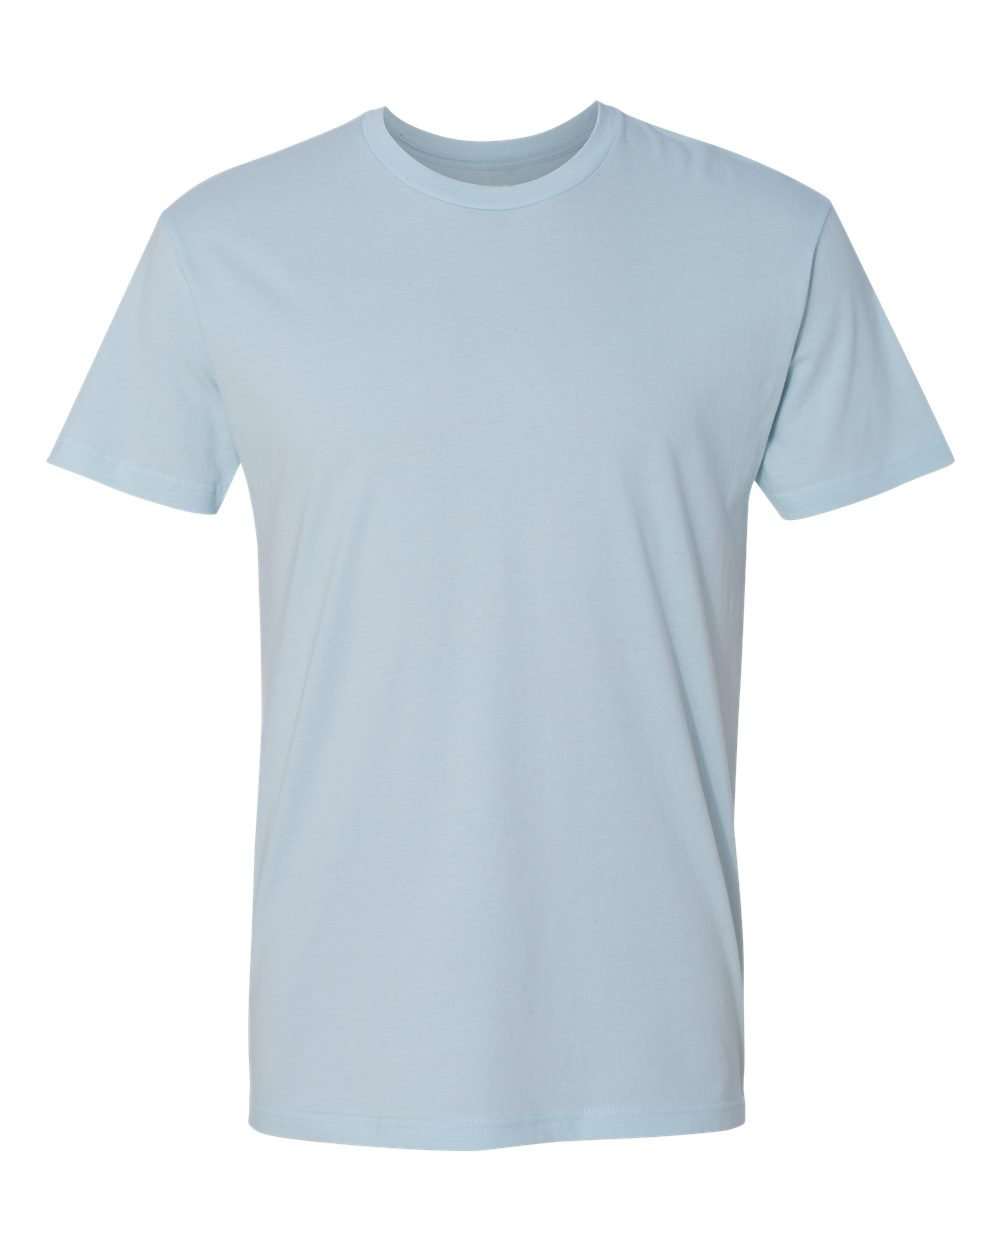 KAMAL OHAVA Men's Premium Cotton T-Shirt, 3XL, Light Blue